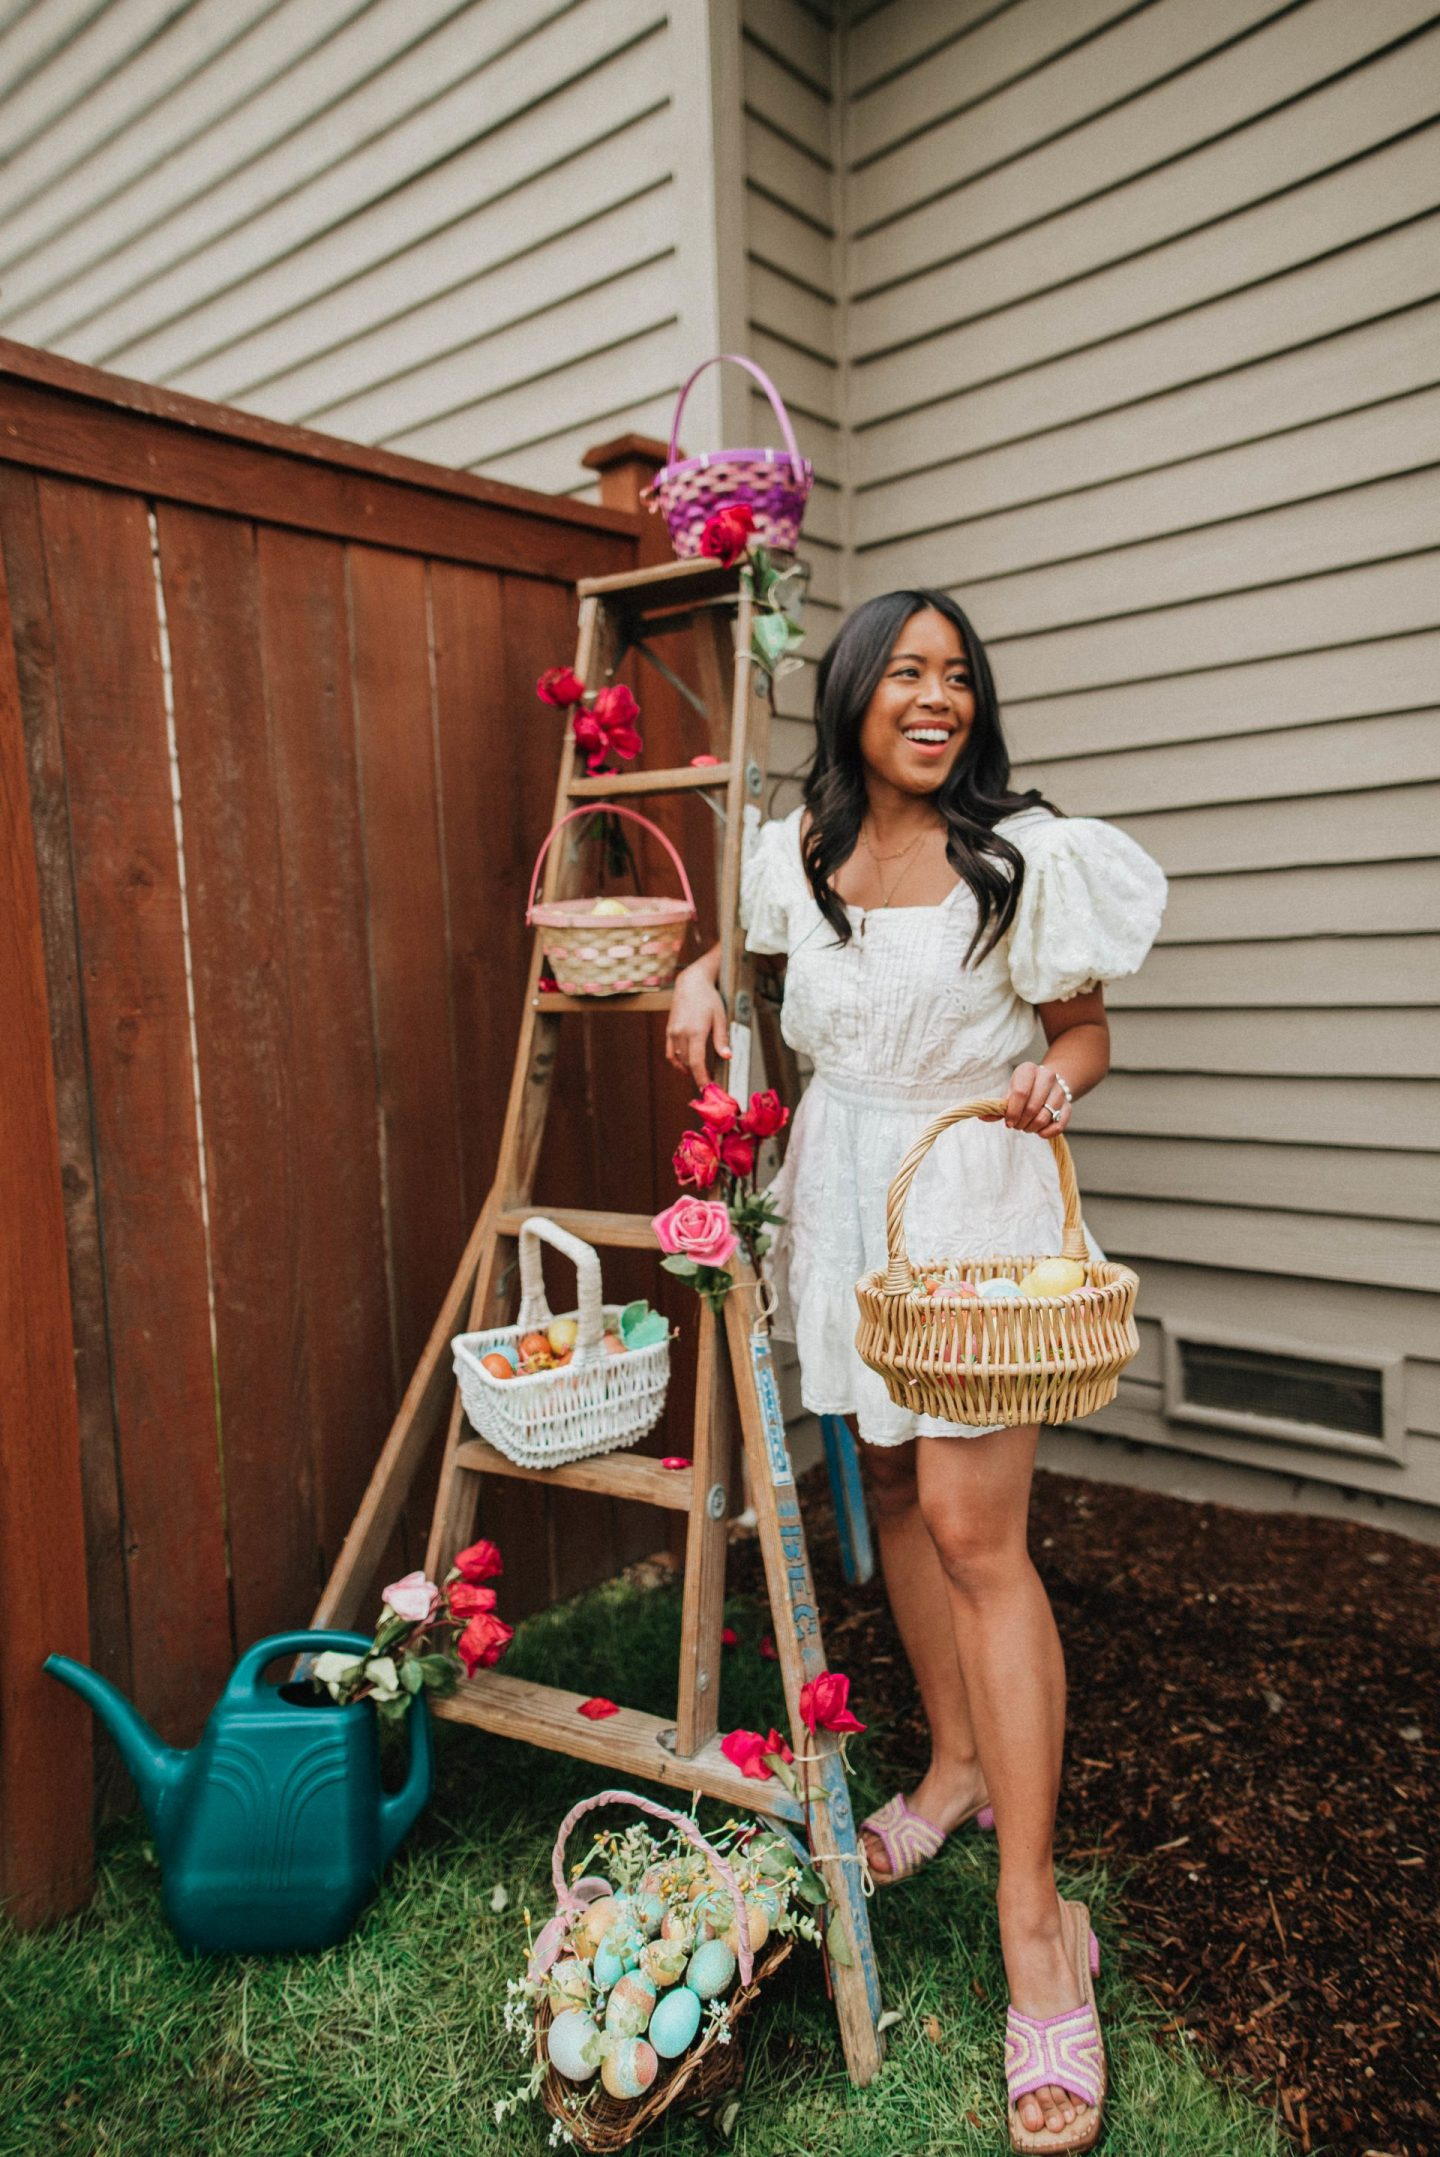 Ladder photo shoot idea - Easter posing ideas - Easter baskets - Easter egg hunt - Easter photo shoot ideas - Easter dresses - Easter outfits - image from www.emmasedition - copyright @emmasedition